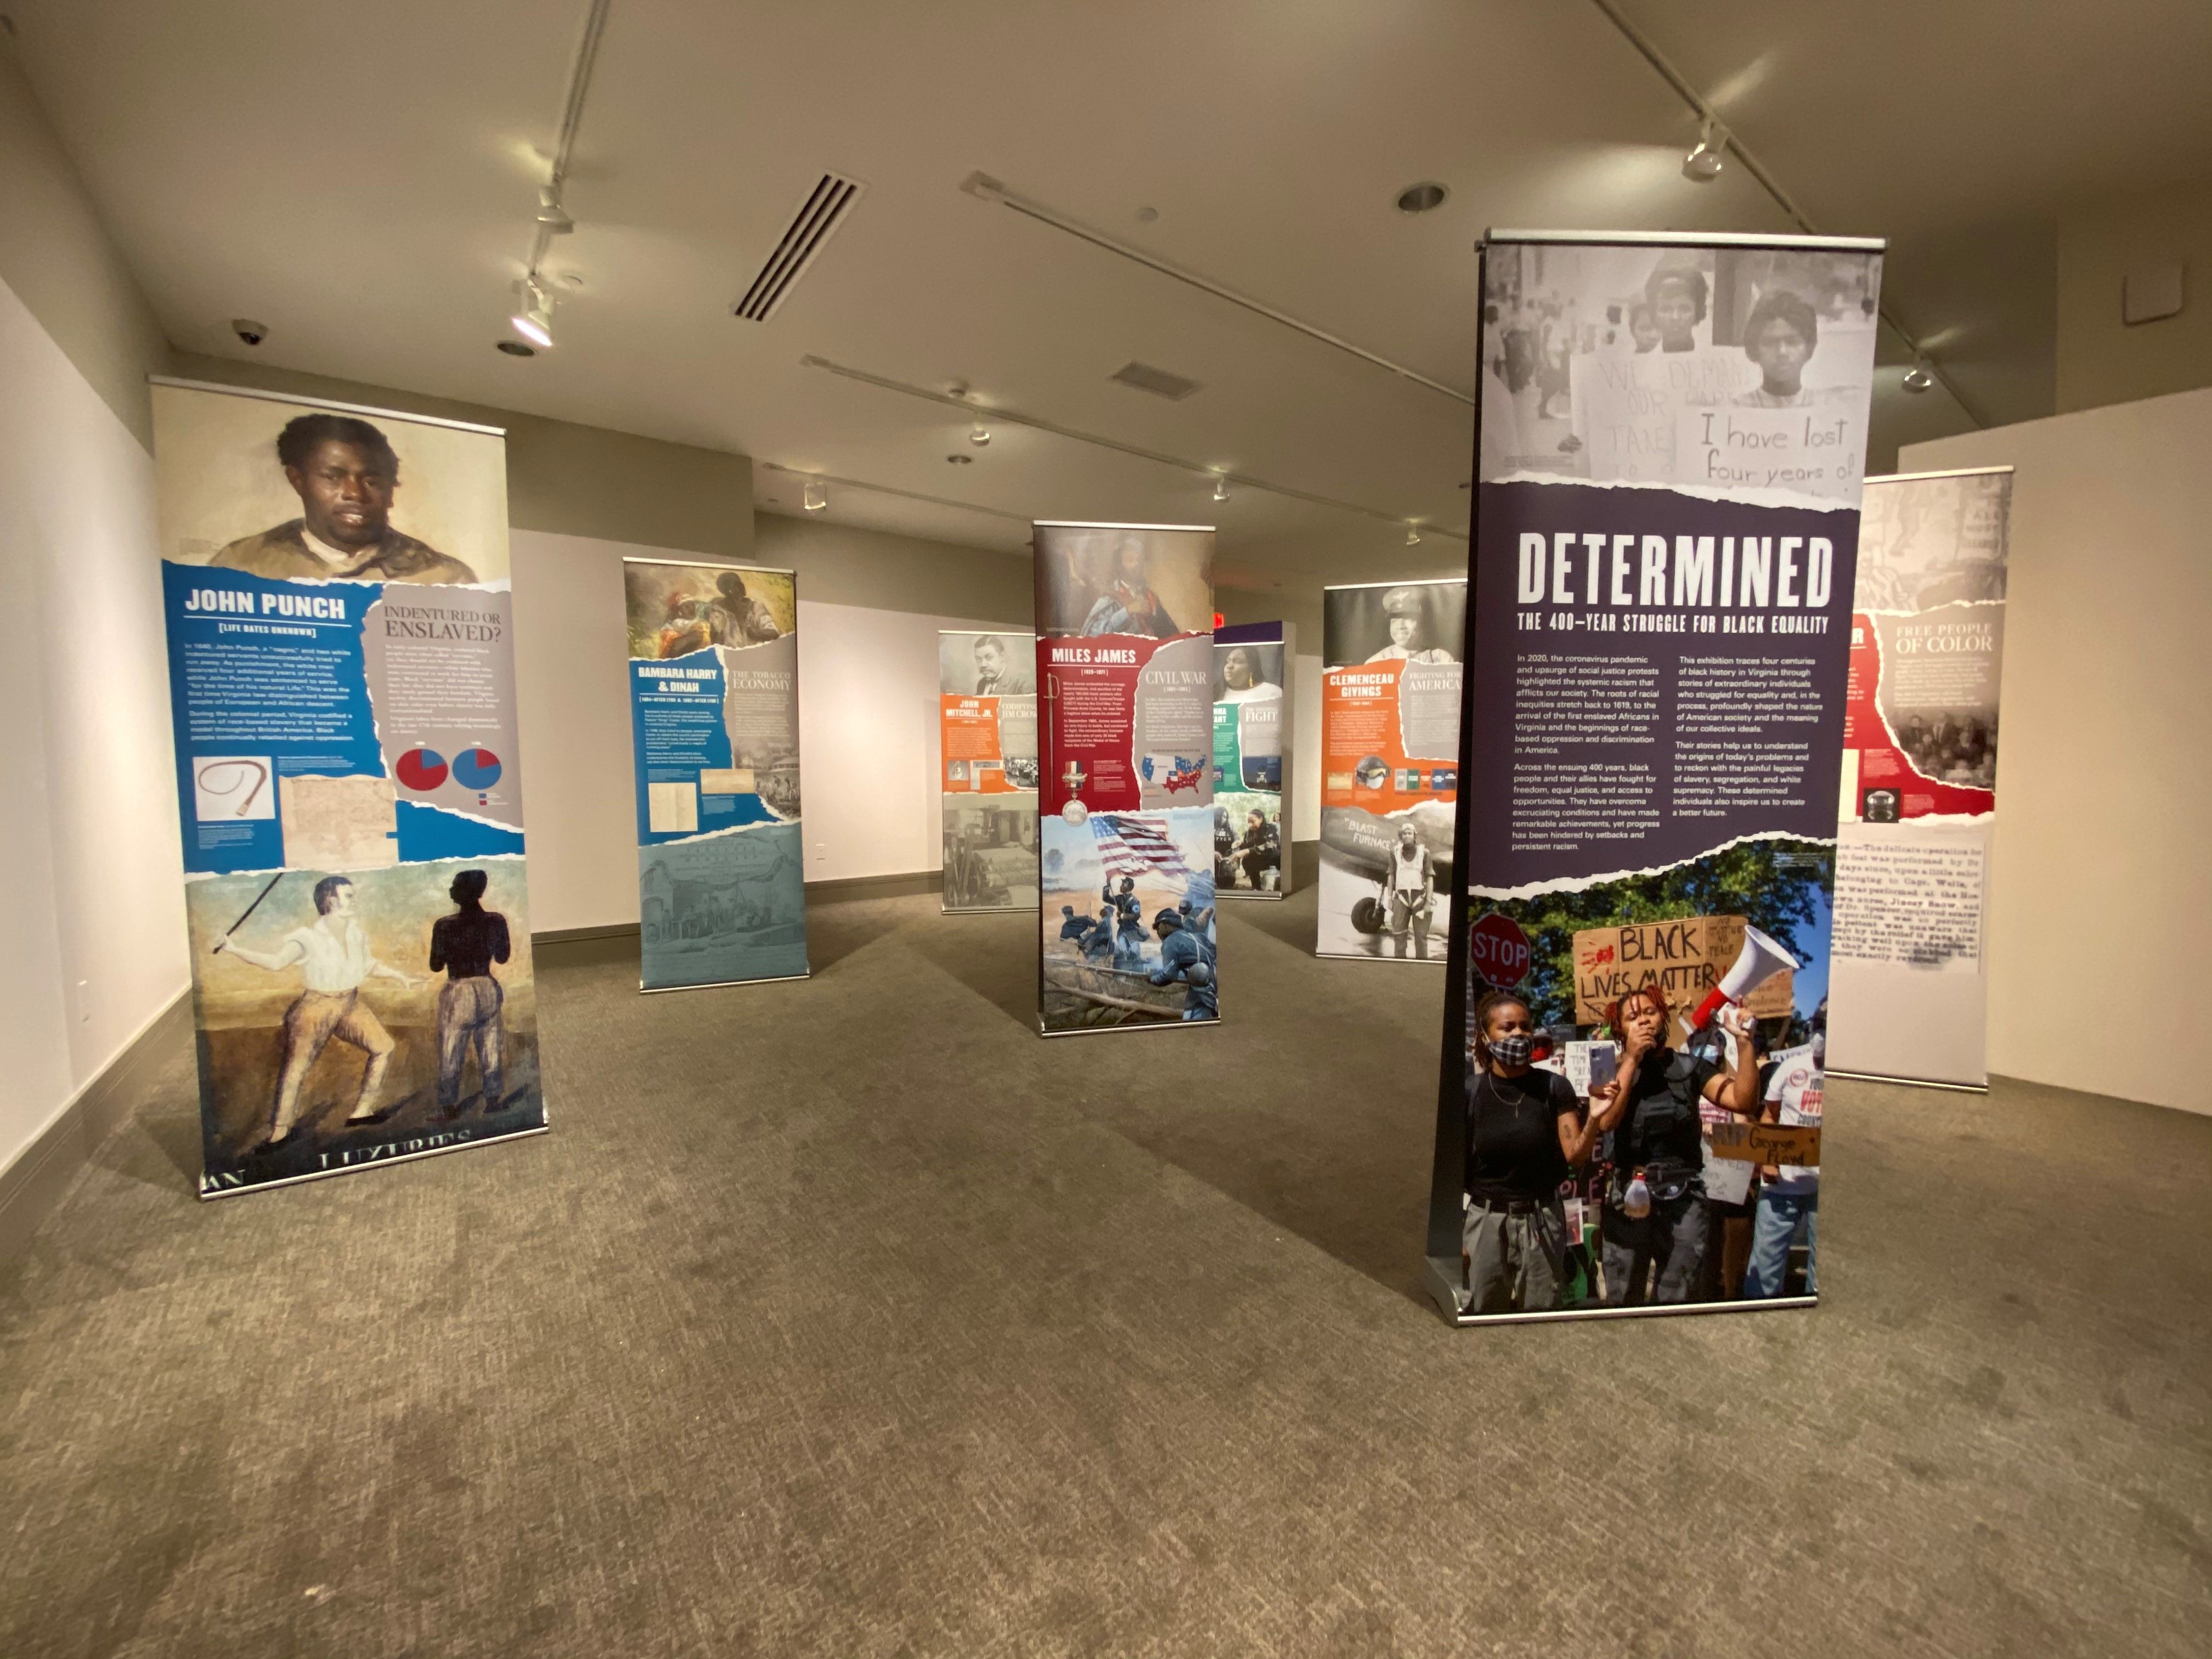 Determined Traveling Exhibition Banners on full display in gallery